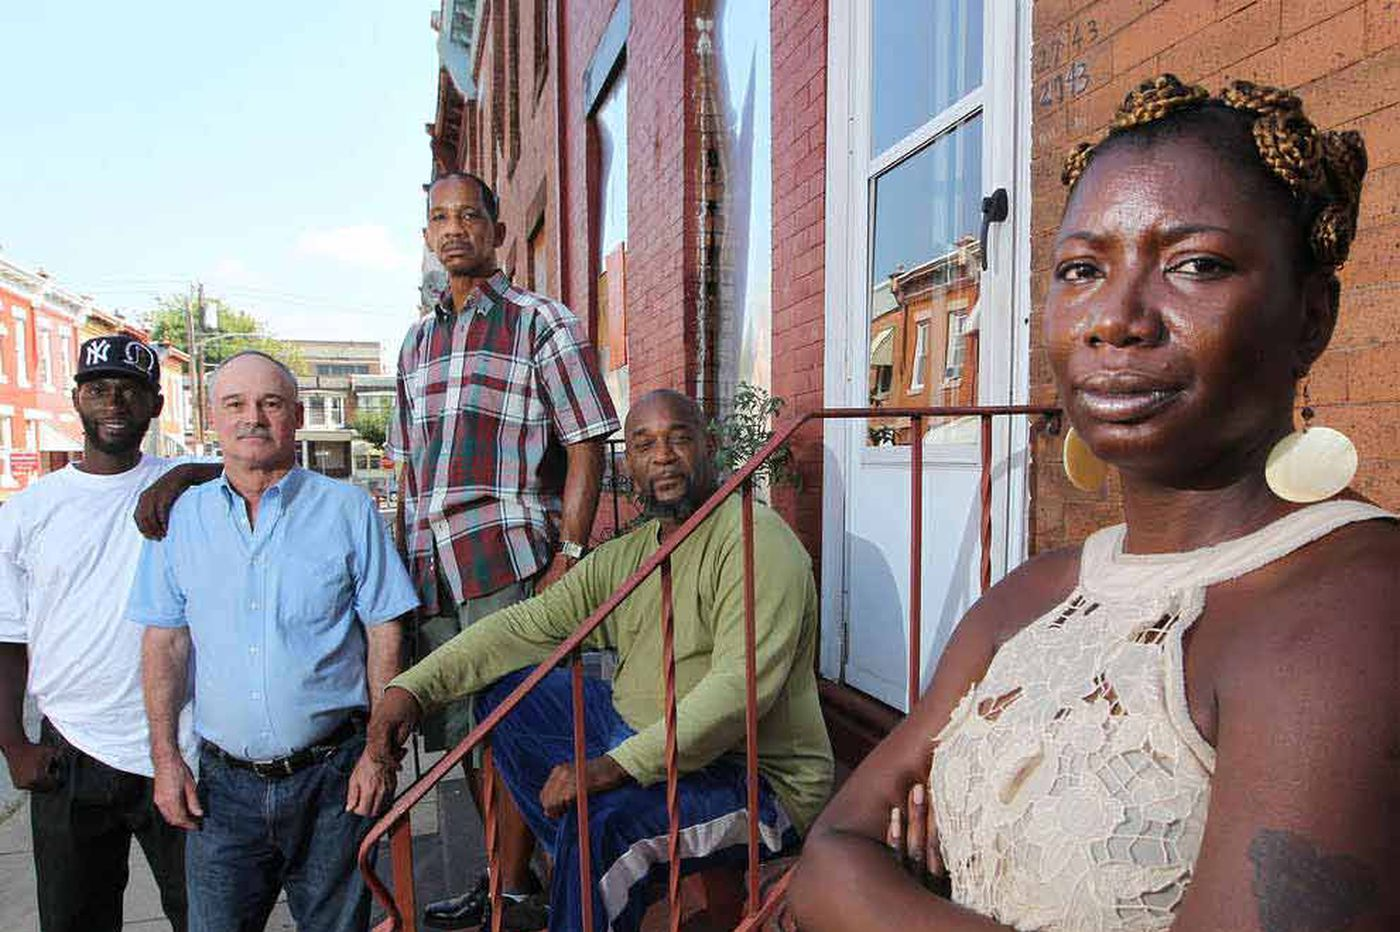 Loss of Pennsylvania aid worries drug-recovery homes, and their neighbors